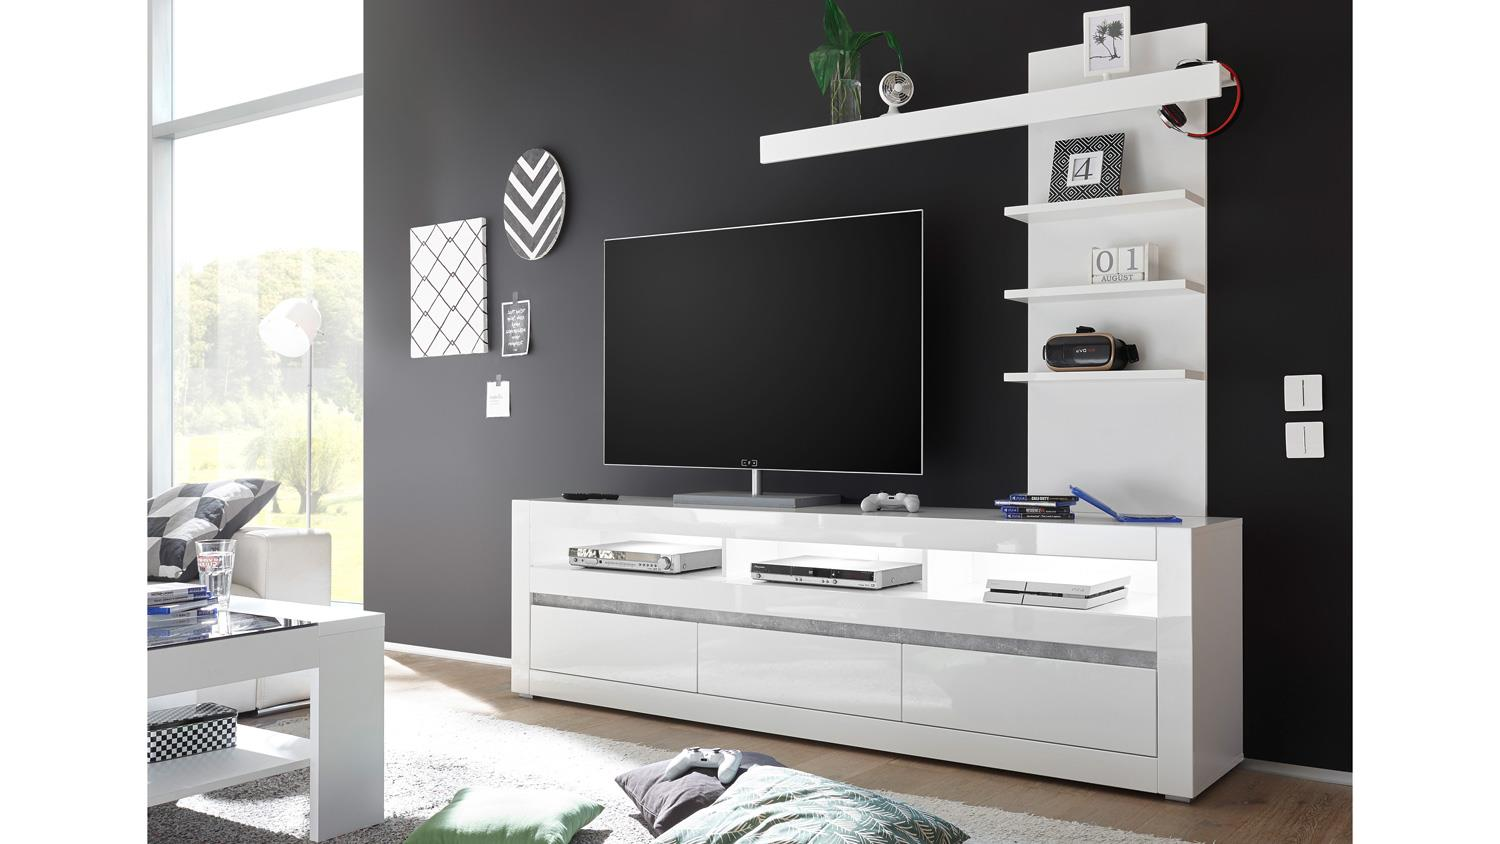 wohnwand 3 carat anbauwand tv board regal wei hochglanz beton grau. Black Bedroom Furniture Sets. Home Design Ideas